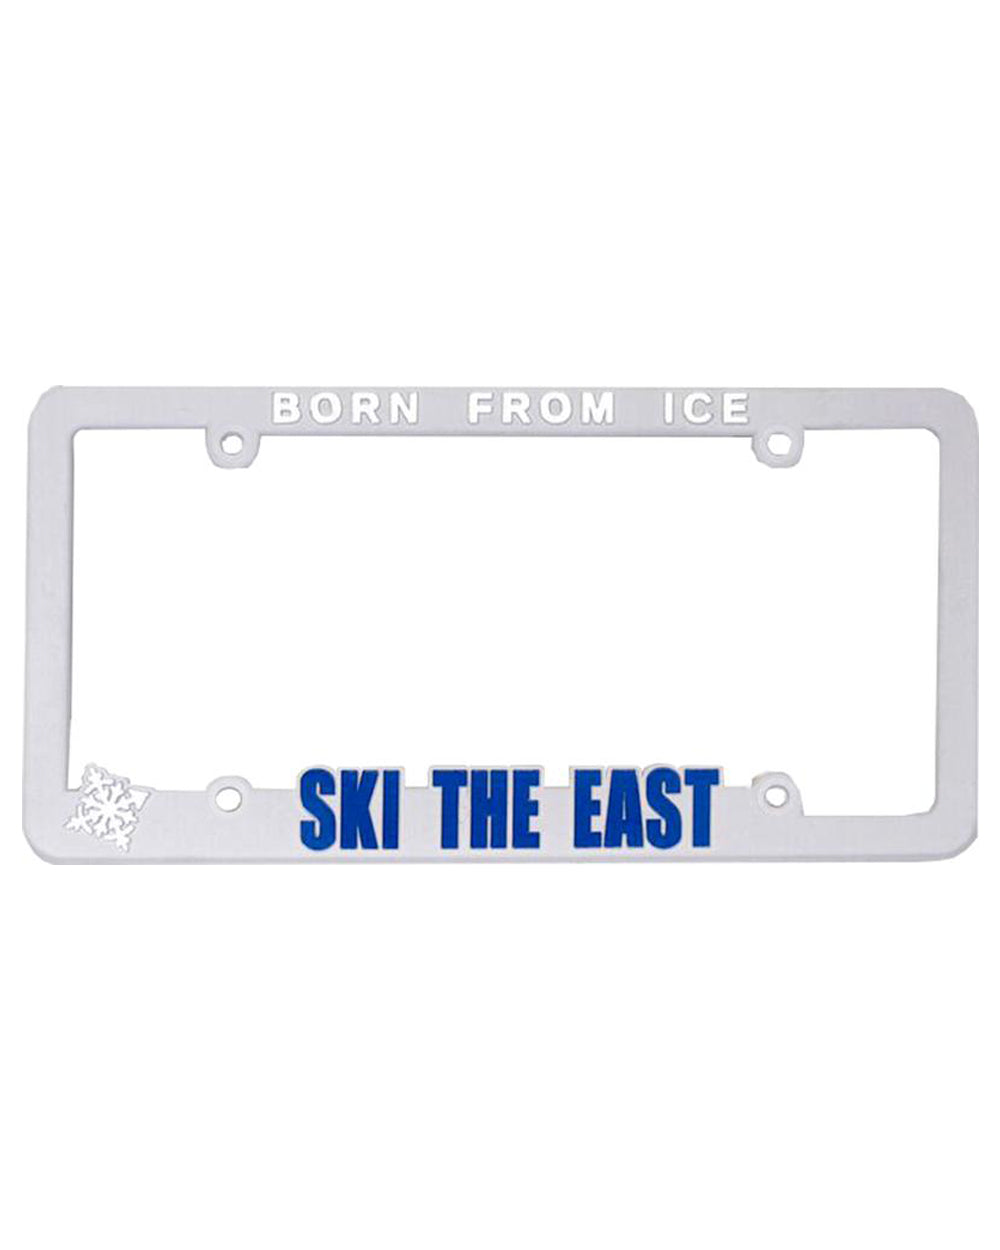 License Plate Frame - White - Ski The East